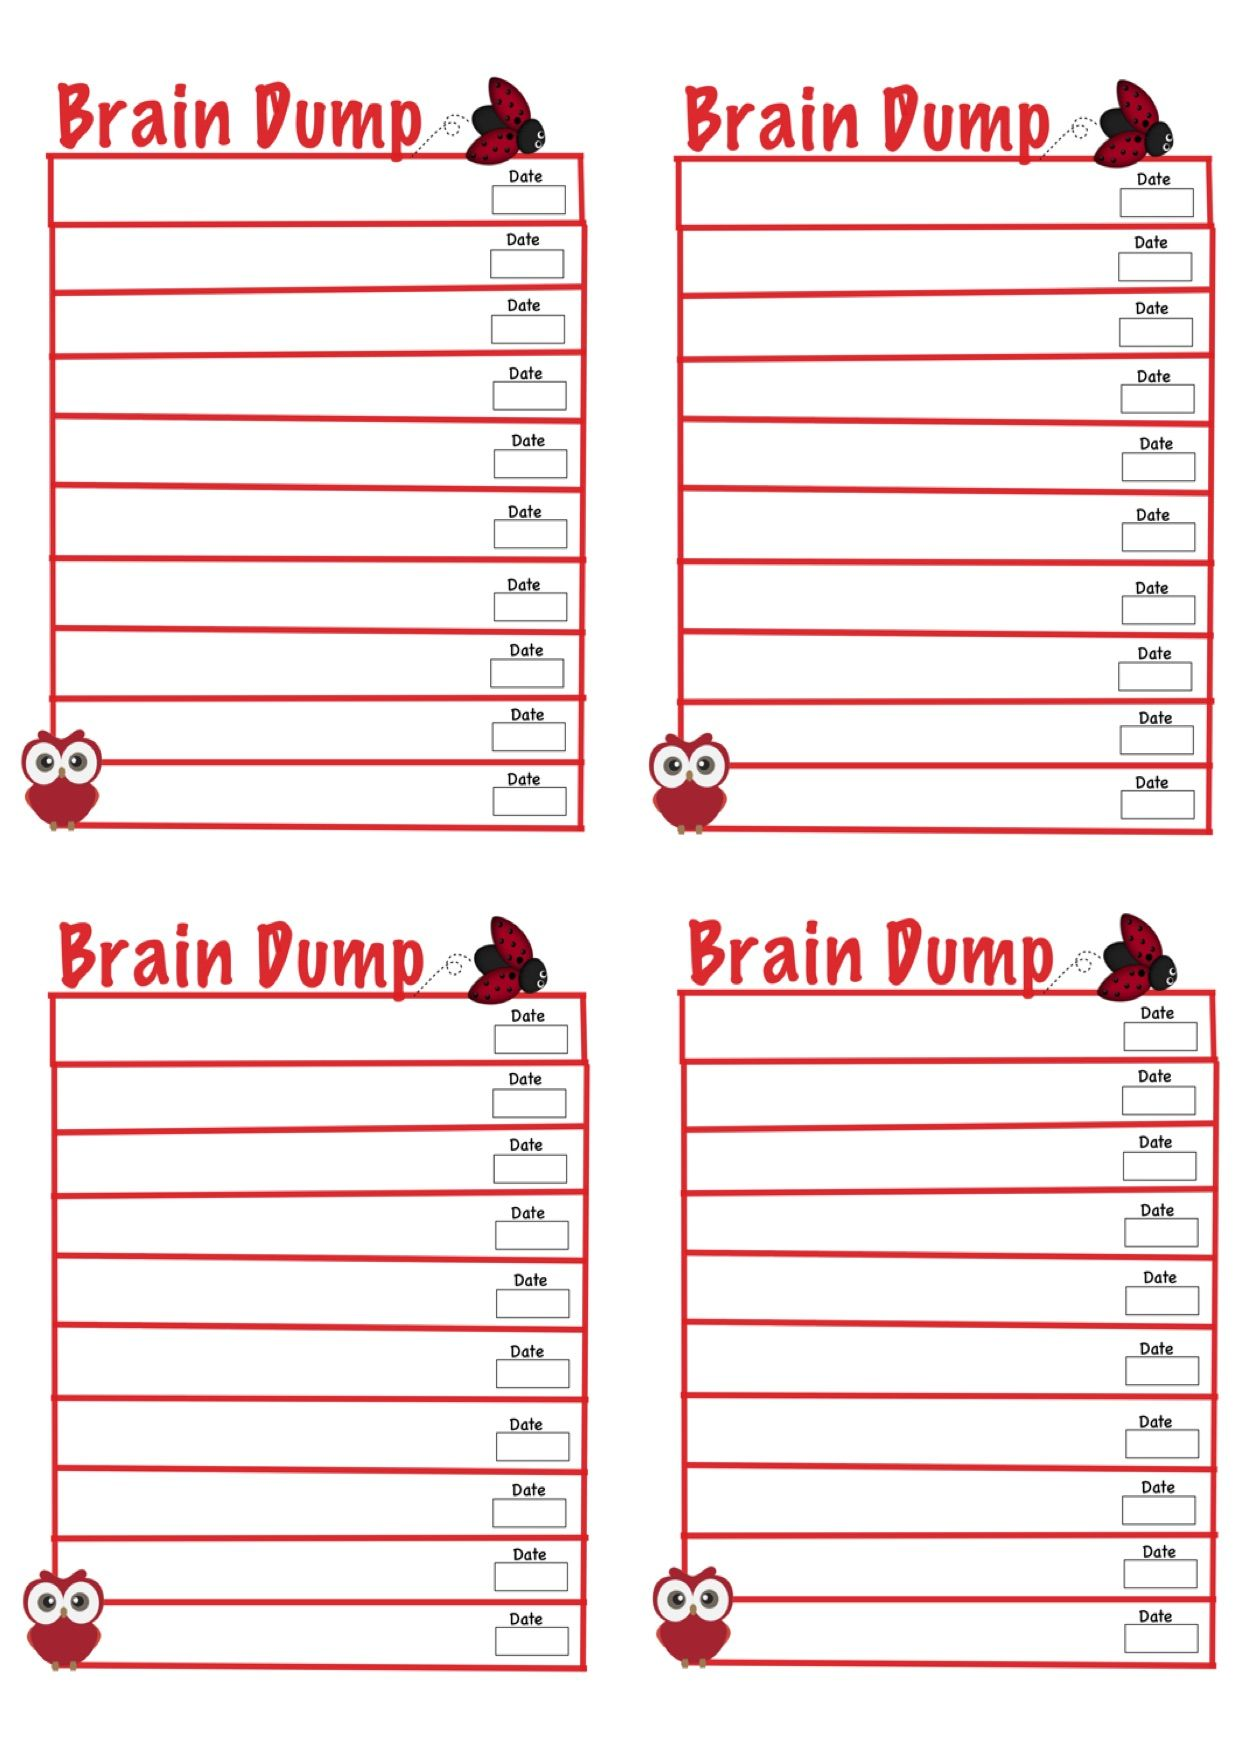 Brain Dump Template Printable